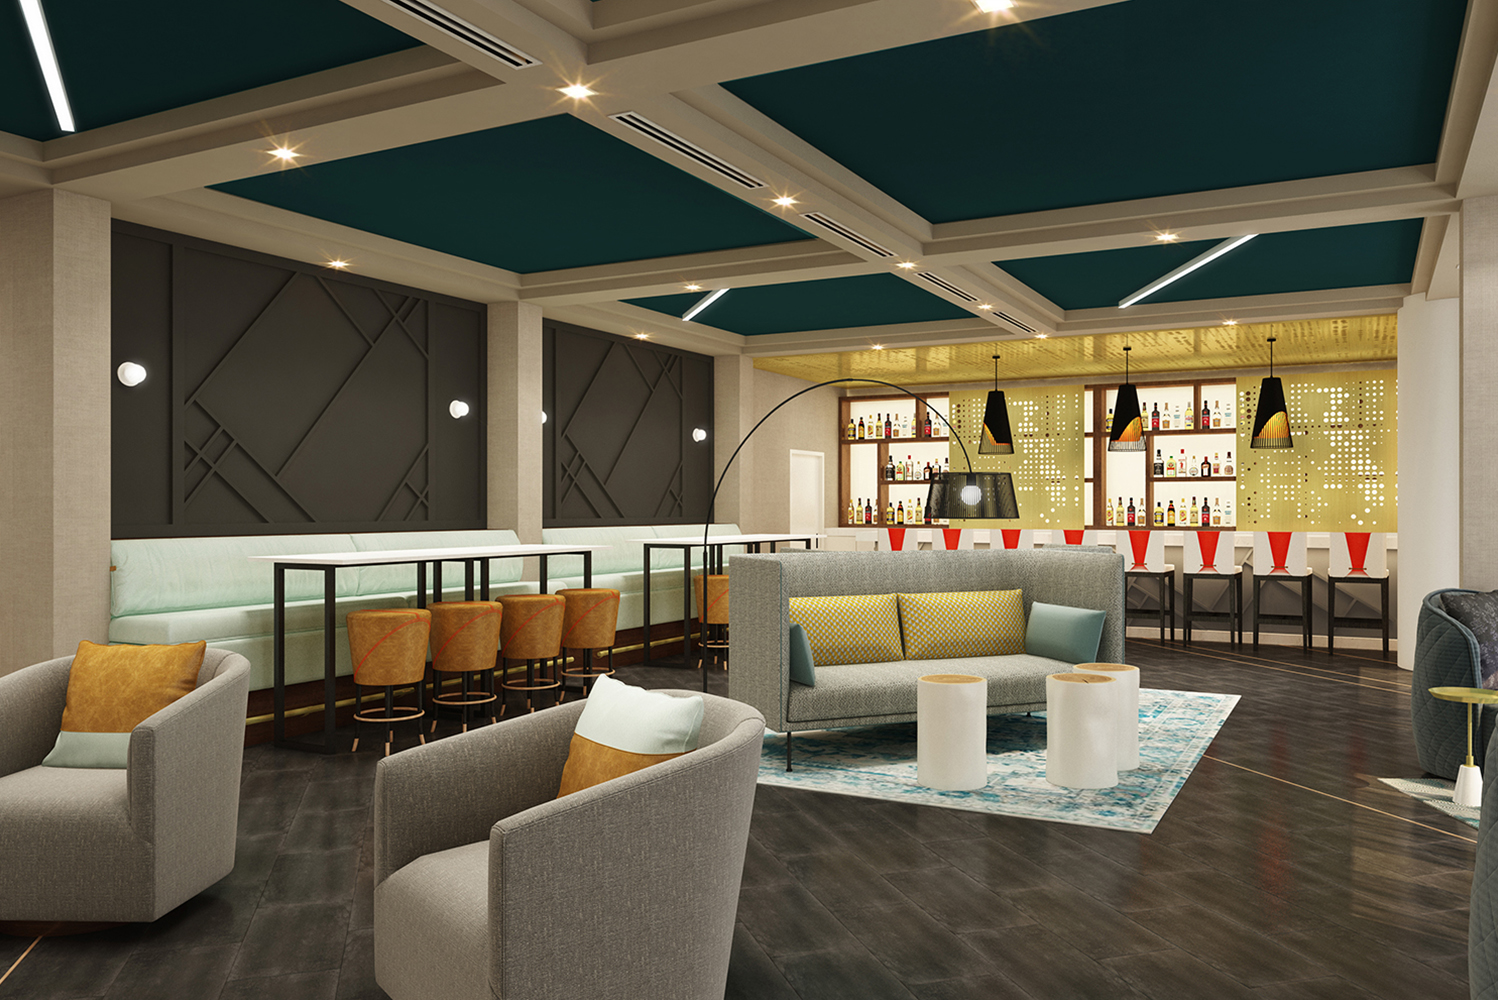 STUDIO 11 of Dallas is the interior designer for the lobby, public areas and meeting space.